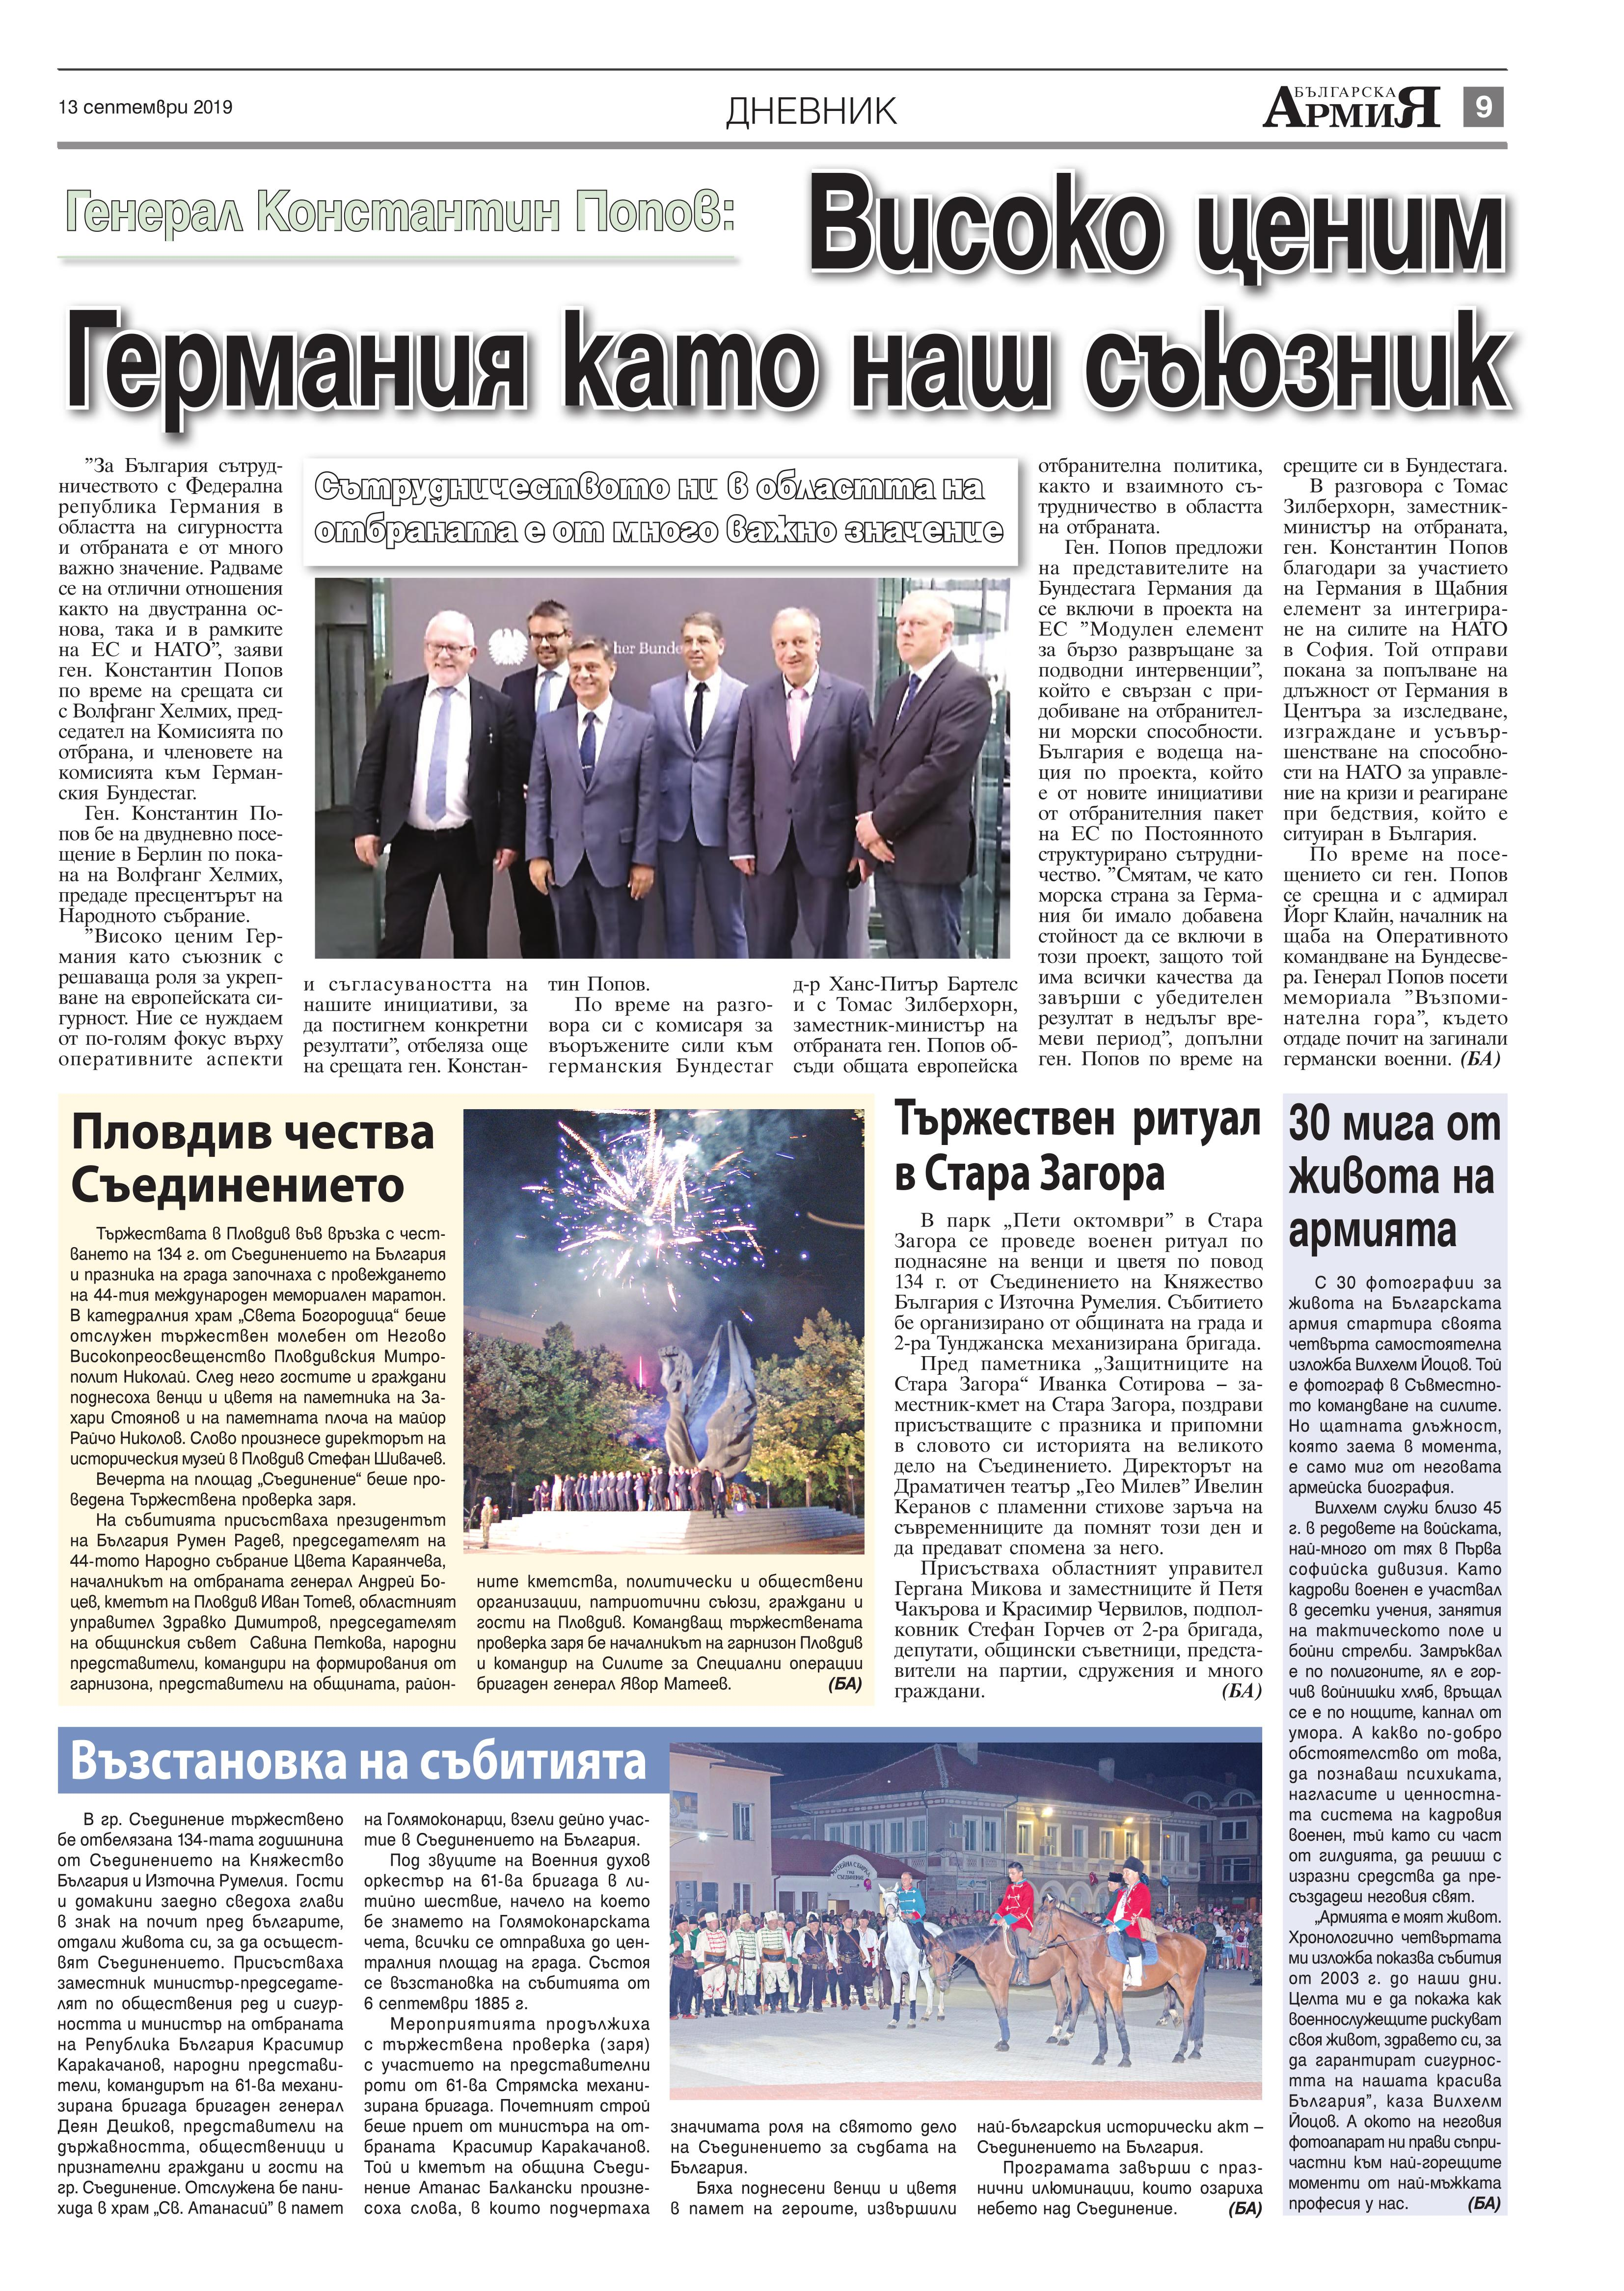 https://armymedia.bg/wp-content/uploads/2015/06/09.page1_-107.jpg